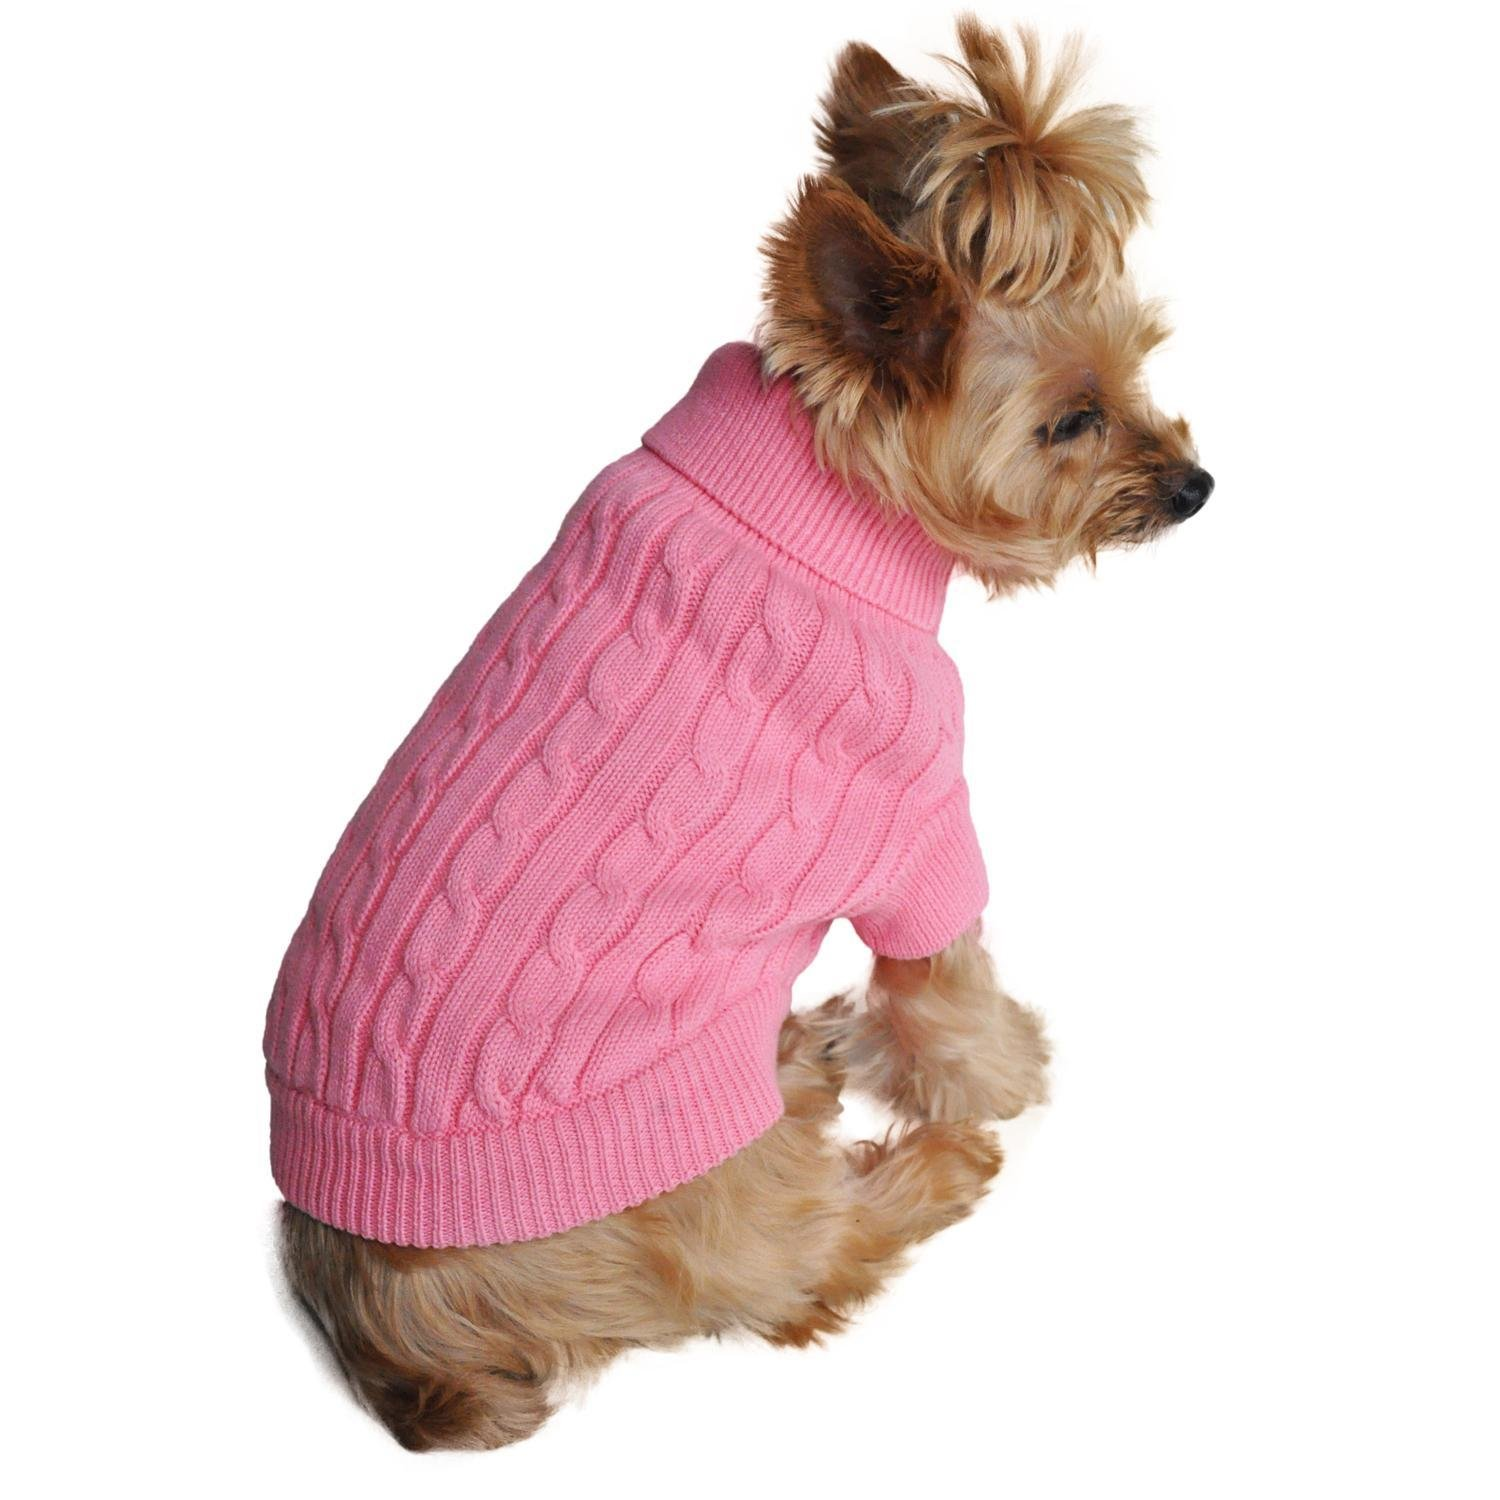 Combed Cotton Cable Knit Dog Sweater (Candy Pink)